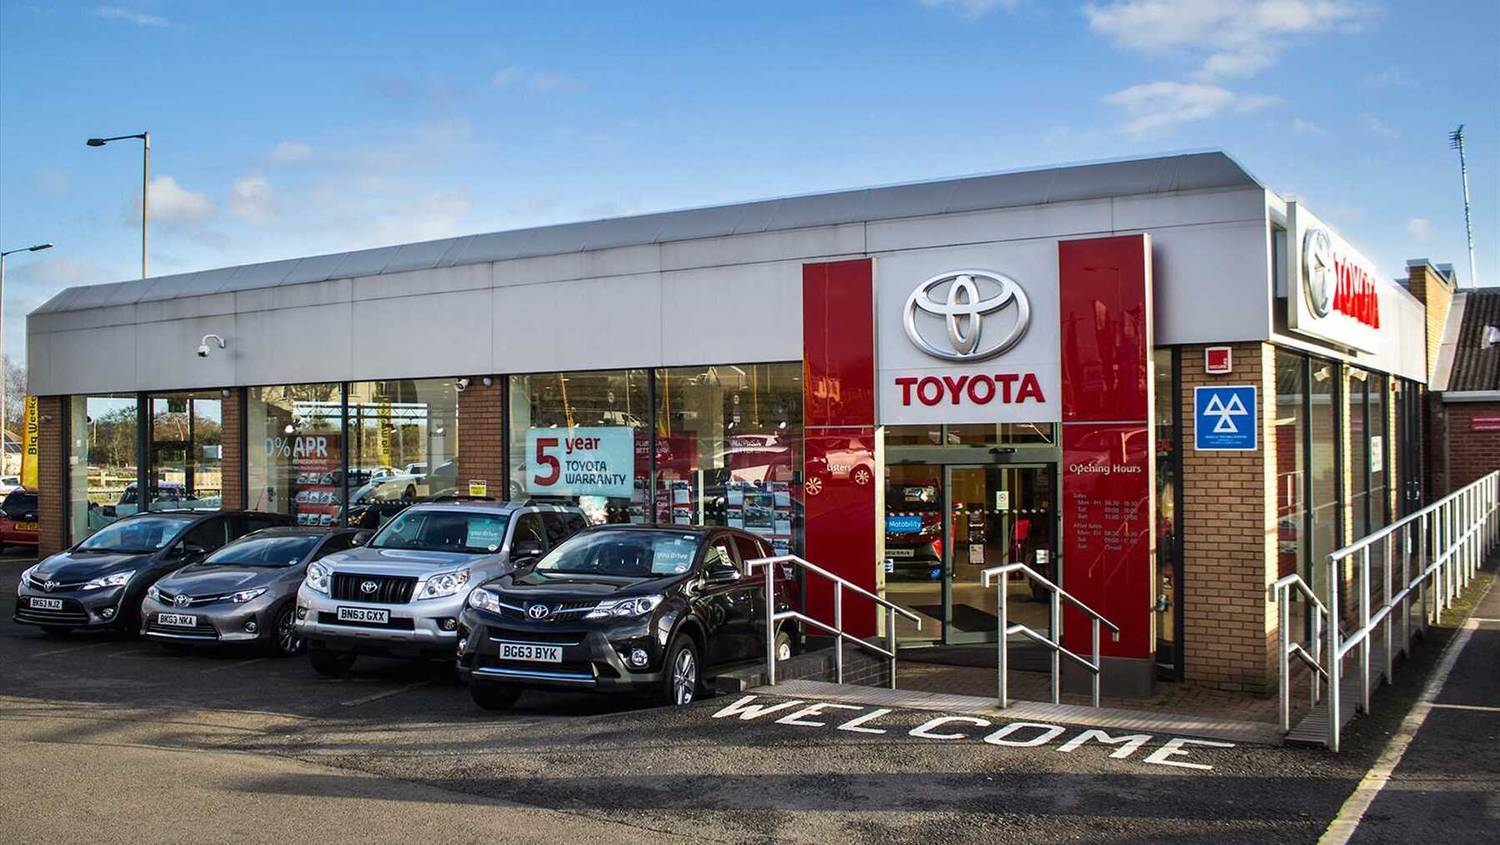 Listers Toyota Coventry Toyota Servicing Toyota Dealer - Toyota dealership hours